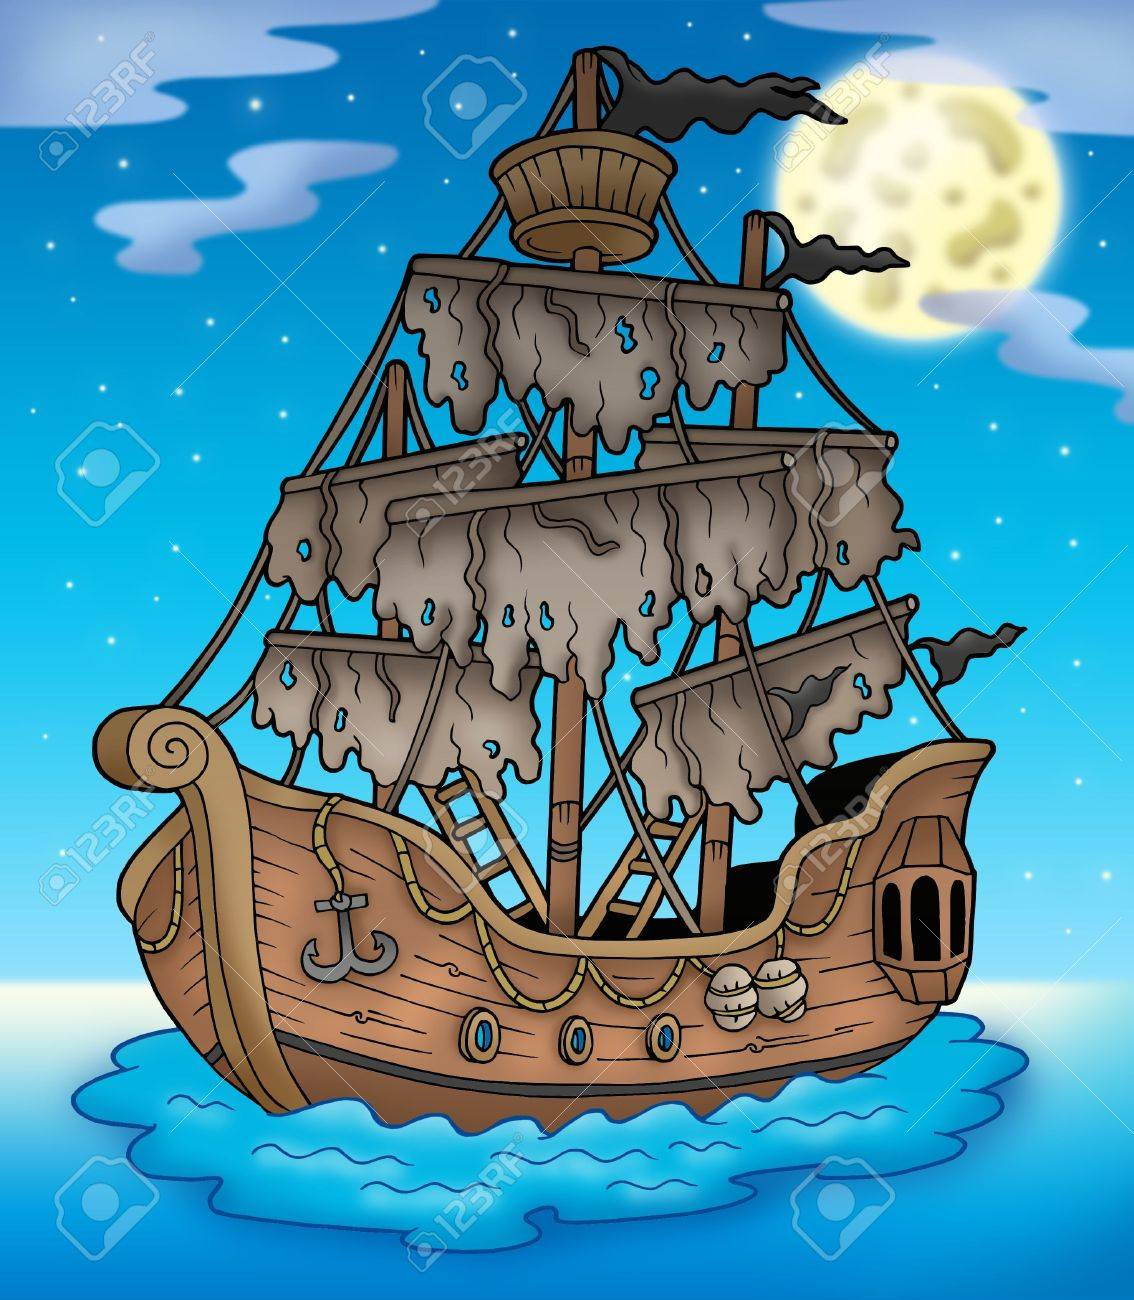 Mysterious ship with full Moon - color illustration. Stock Illustration - 6123970